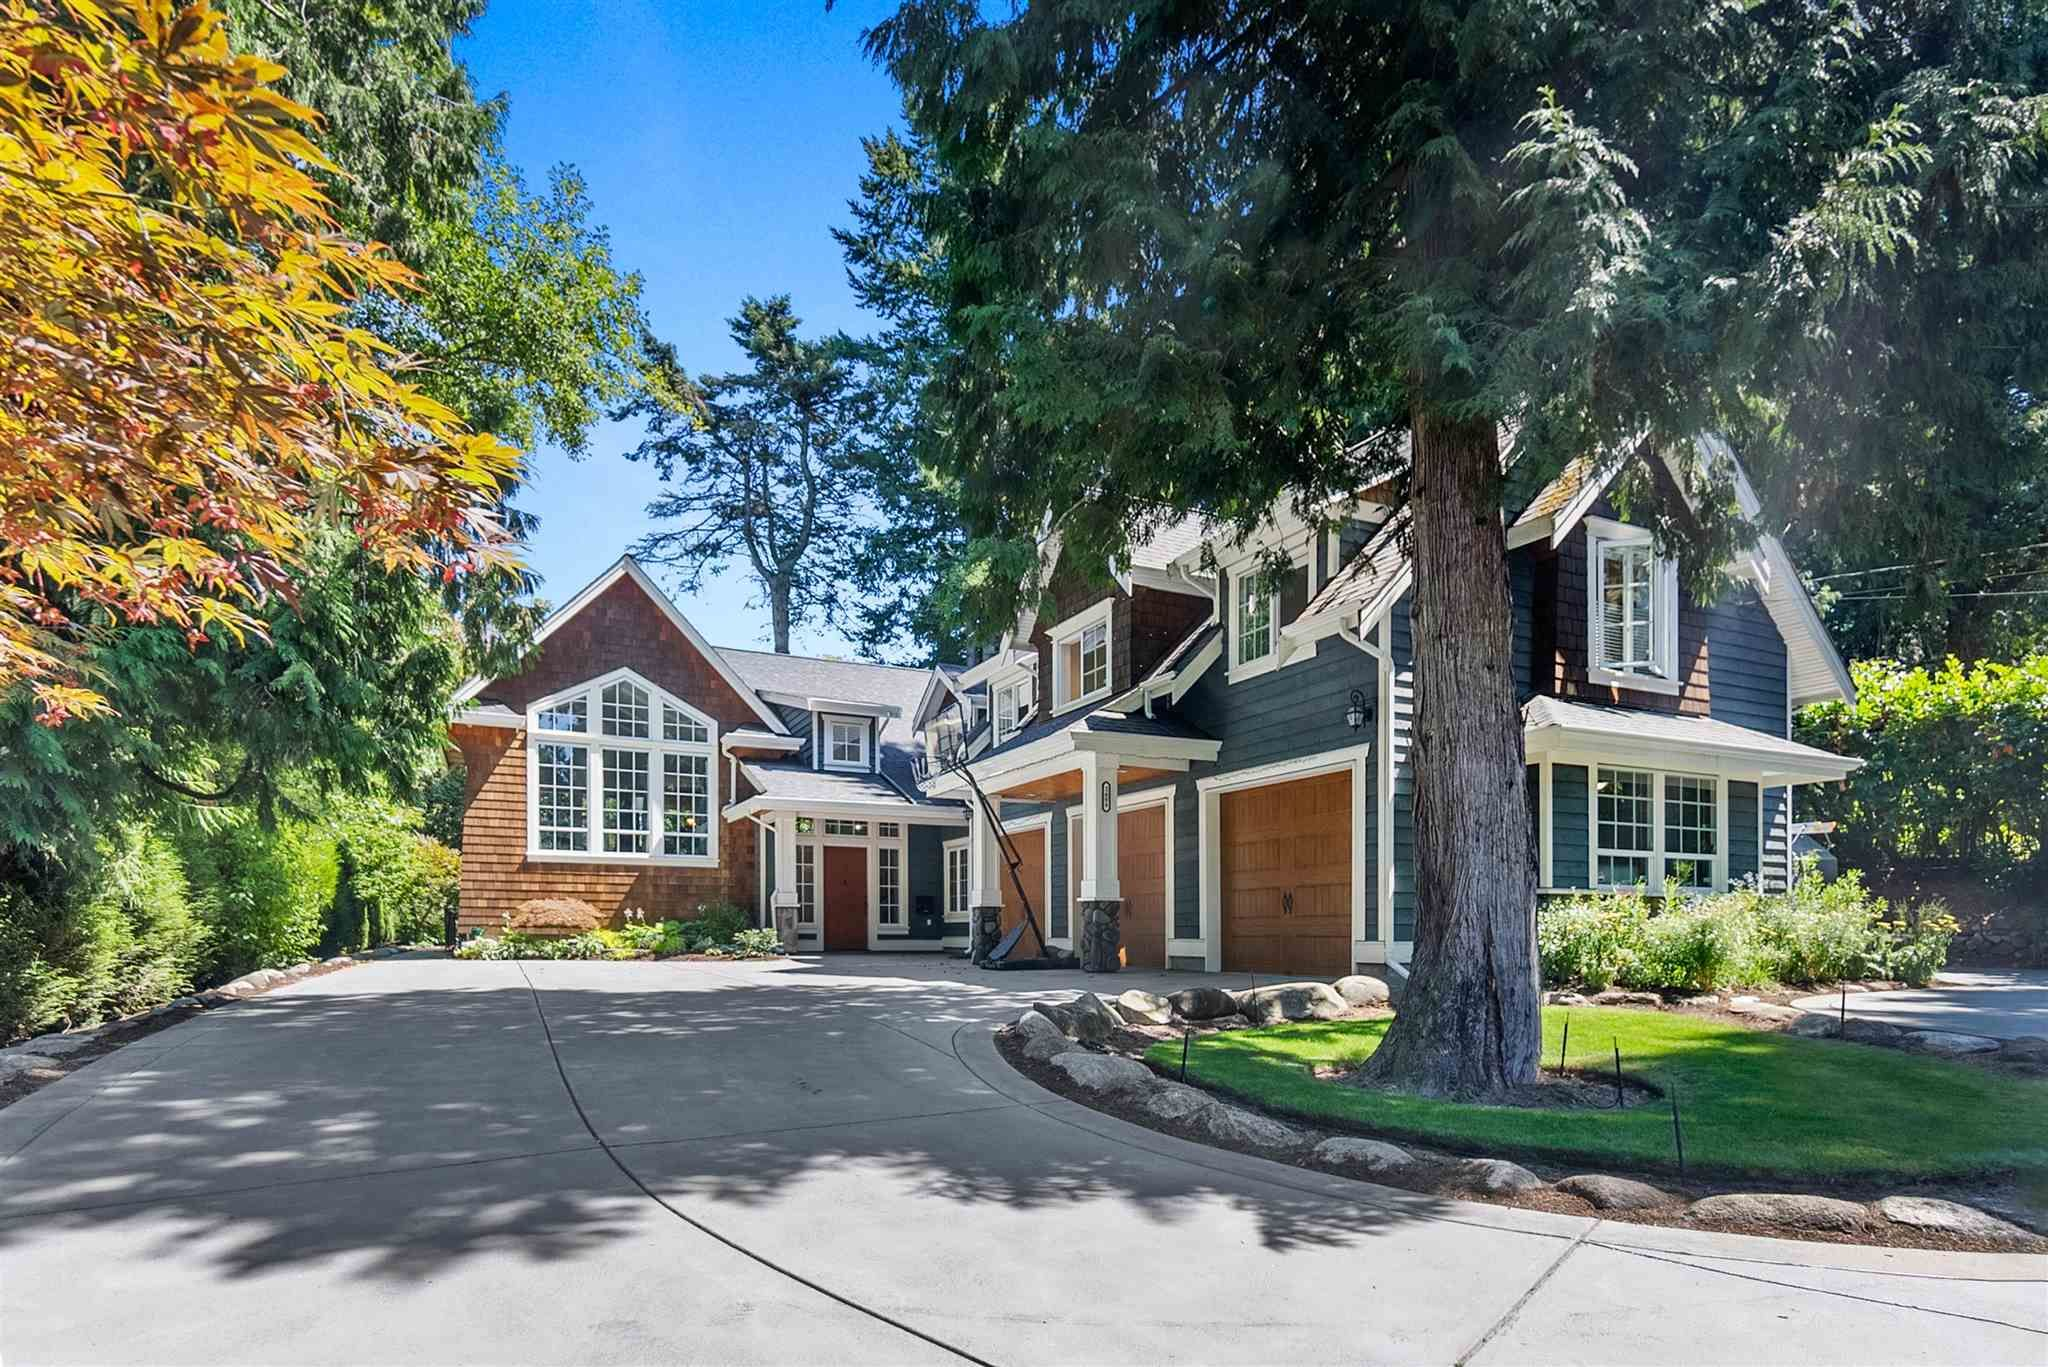 """Main Photo: 2608 CEDAR Drive in Surrey: Crescent Bch Ocean Pk. House for sale in """"Crescent Heights"""" (South Surrey White Rock)  : MLS®# R2607451"""